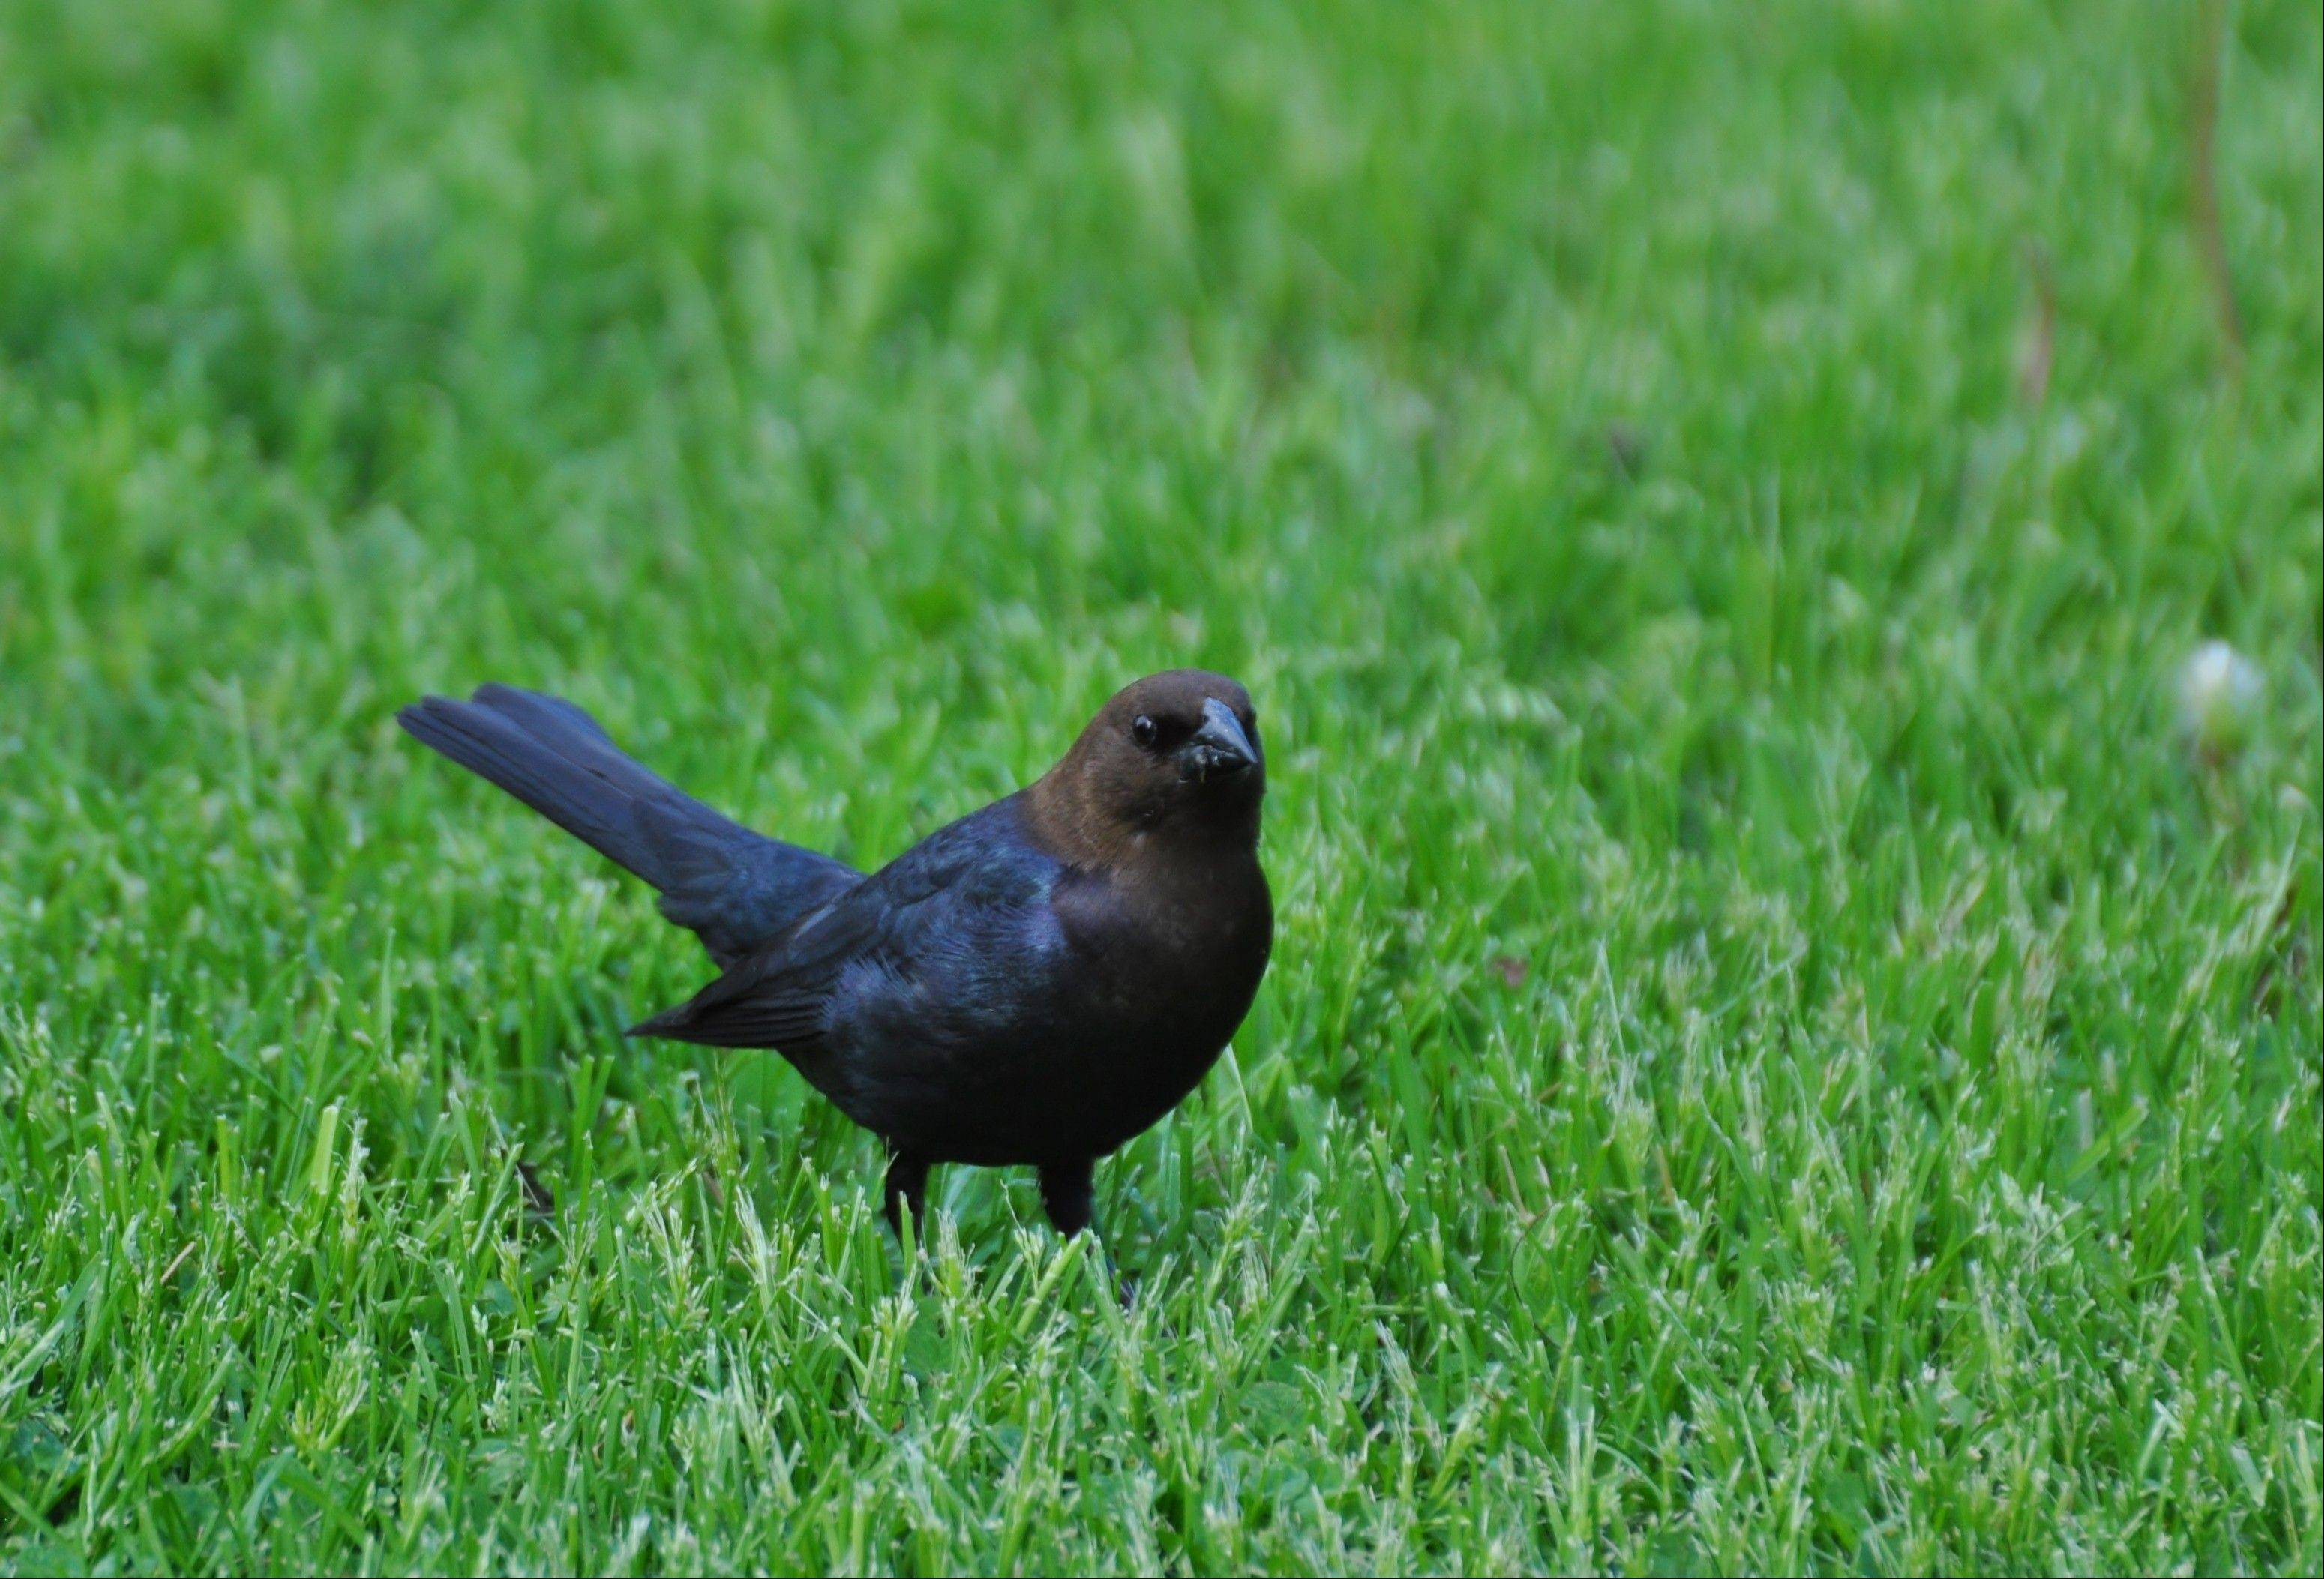 Cowbirds are commonly seen foraging on the ground with a raised tail. Only the male, shown here, has a brown head.